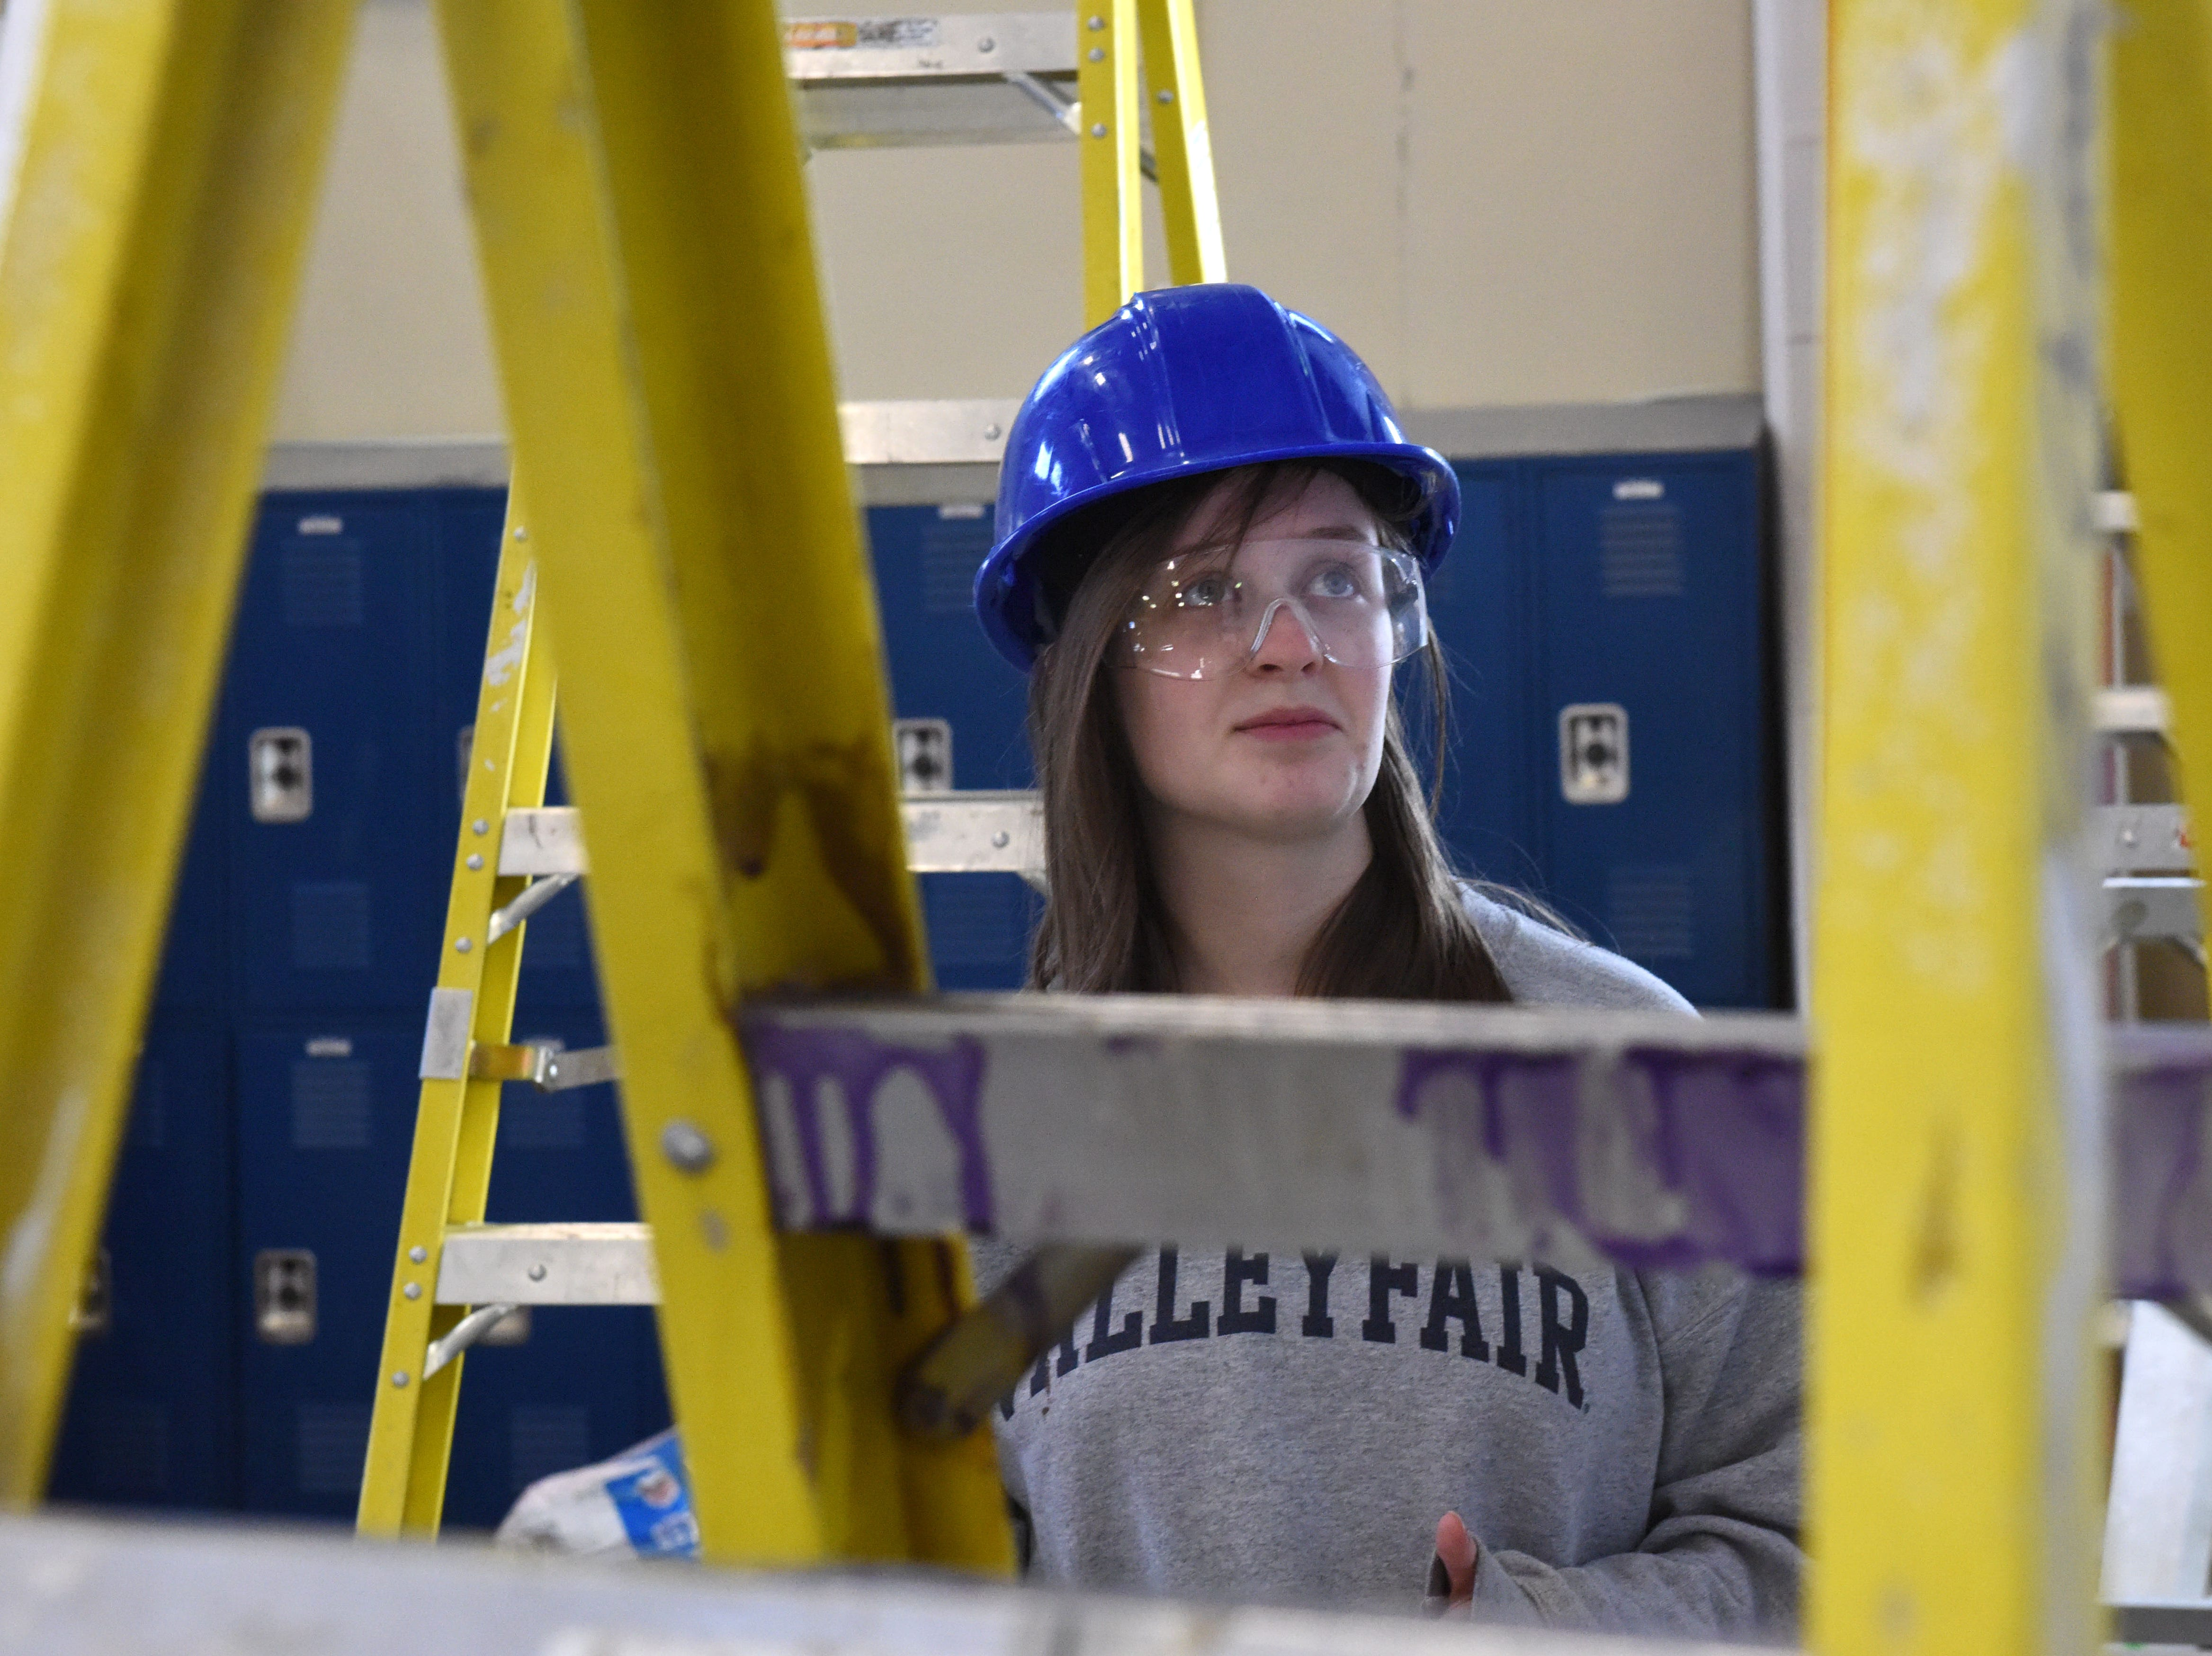 Josie Wahl participates in carpentry class at Career and Technical Education Academy, Monday, Jan. 7, 2019 in Sioux Falls, S.D.